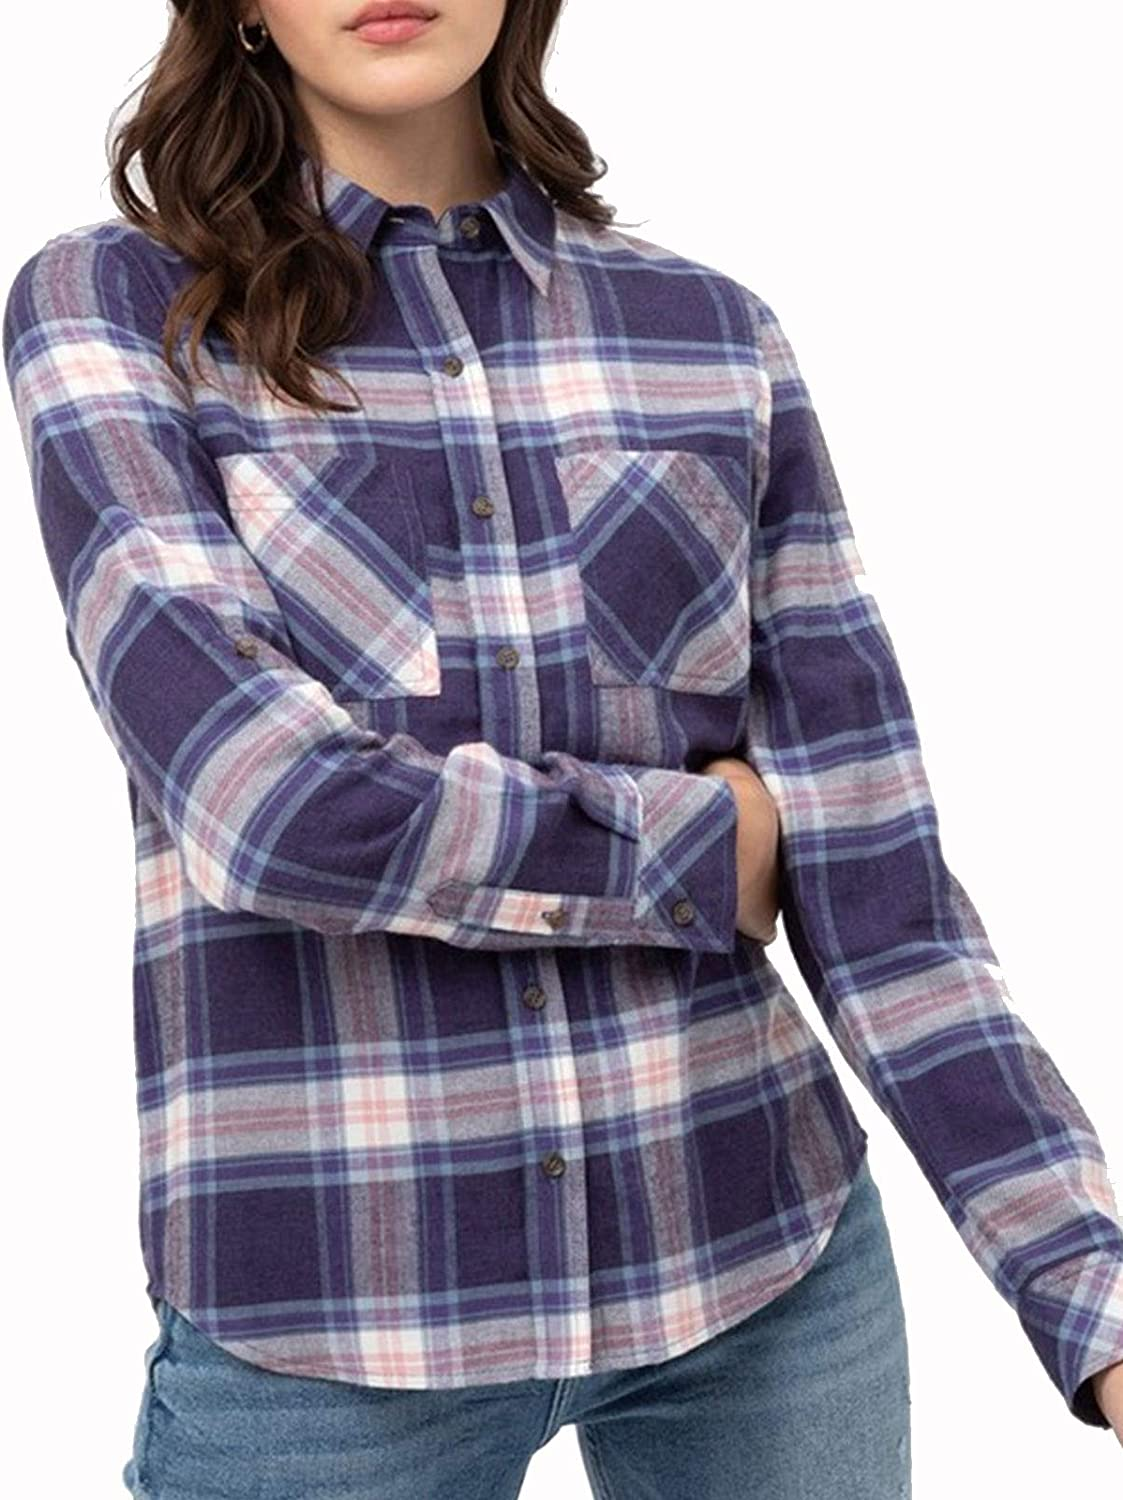 Design by Olivia Womens Checkered Plaid Roll Up Sleeve Stretch Knit Button Down Shirt